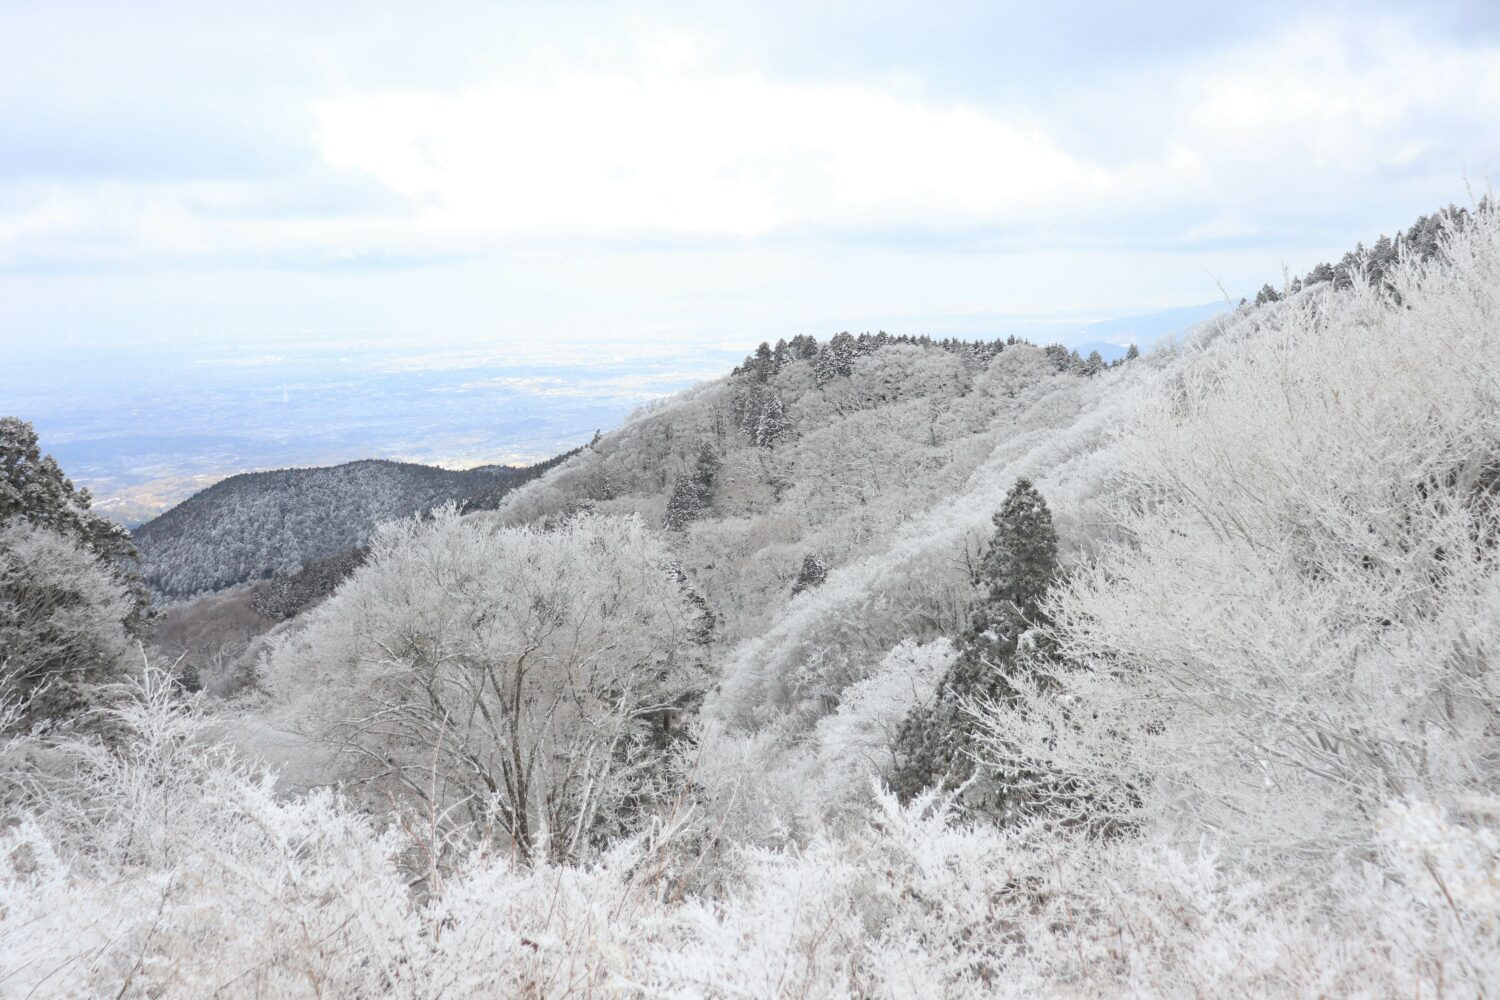 Mount Kongo, Kansai's Snowy Escape